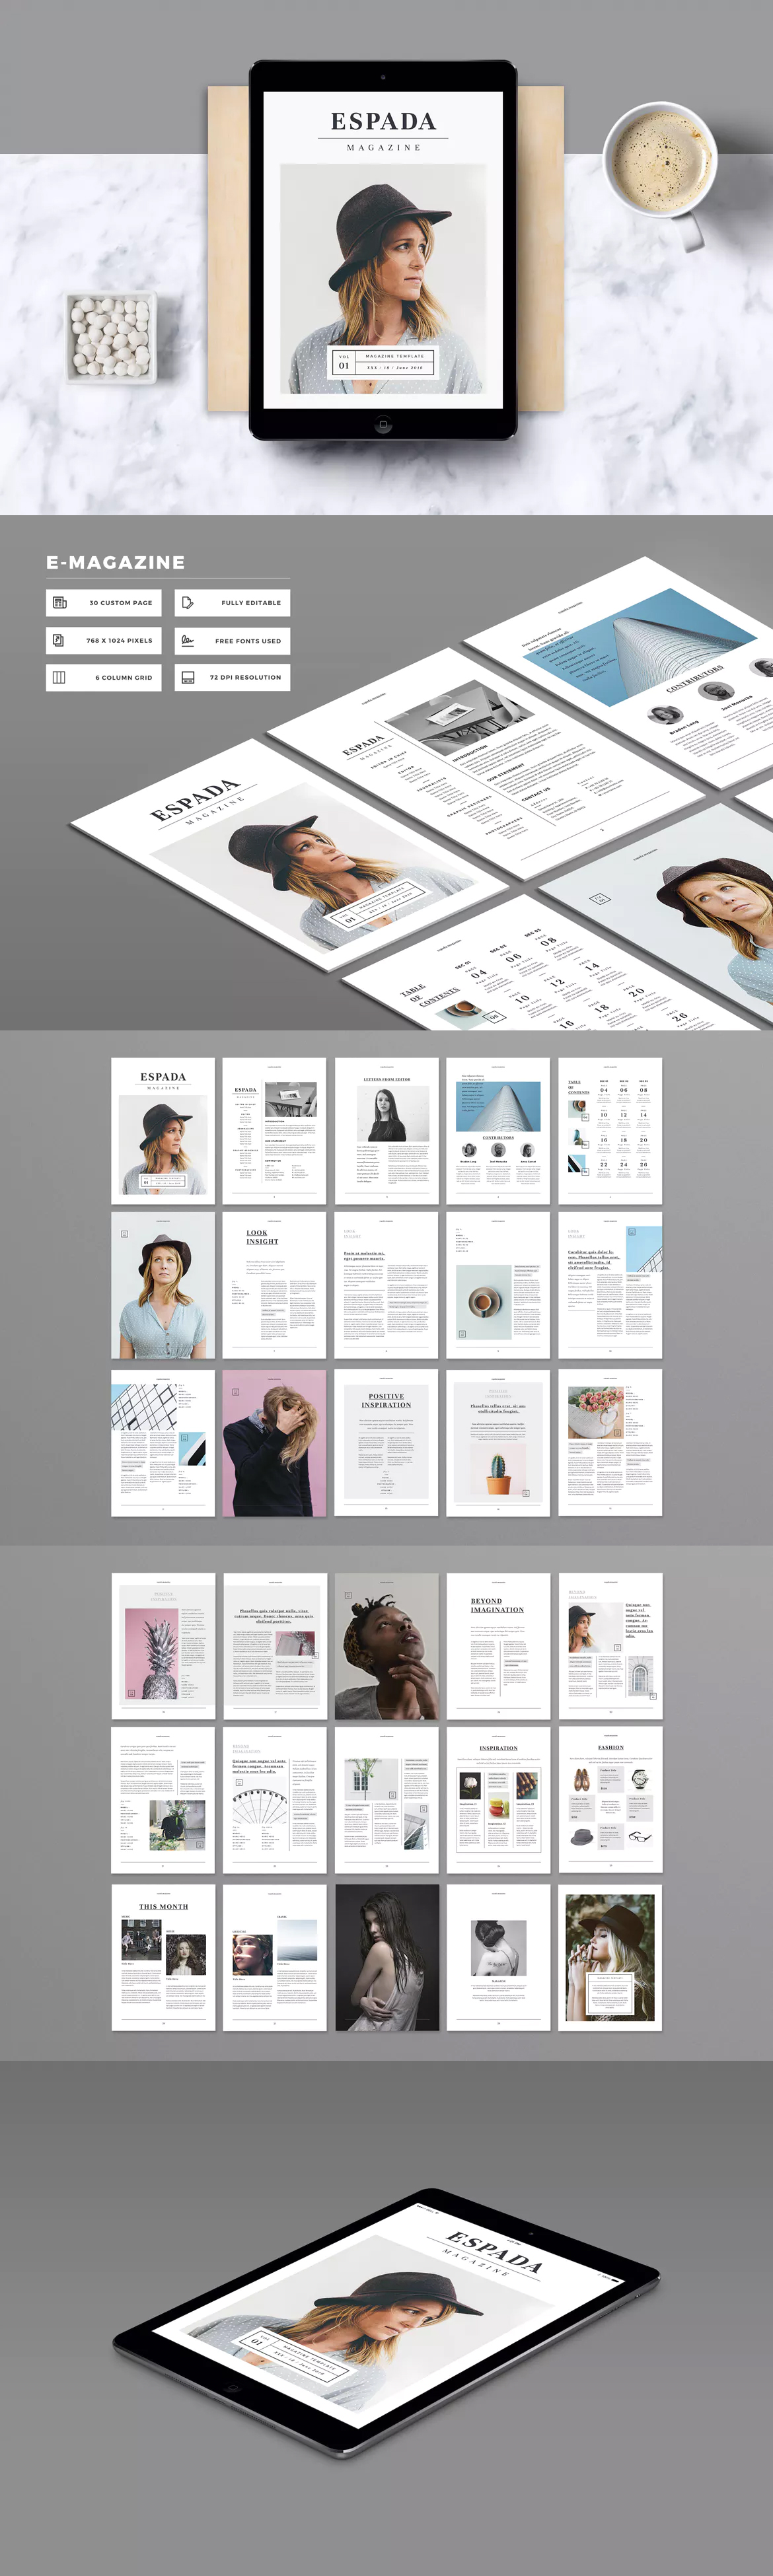 E-Magazine Template InDesign INDD | E-Publishing Templates ...